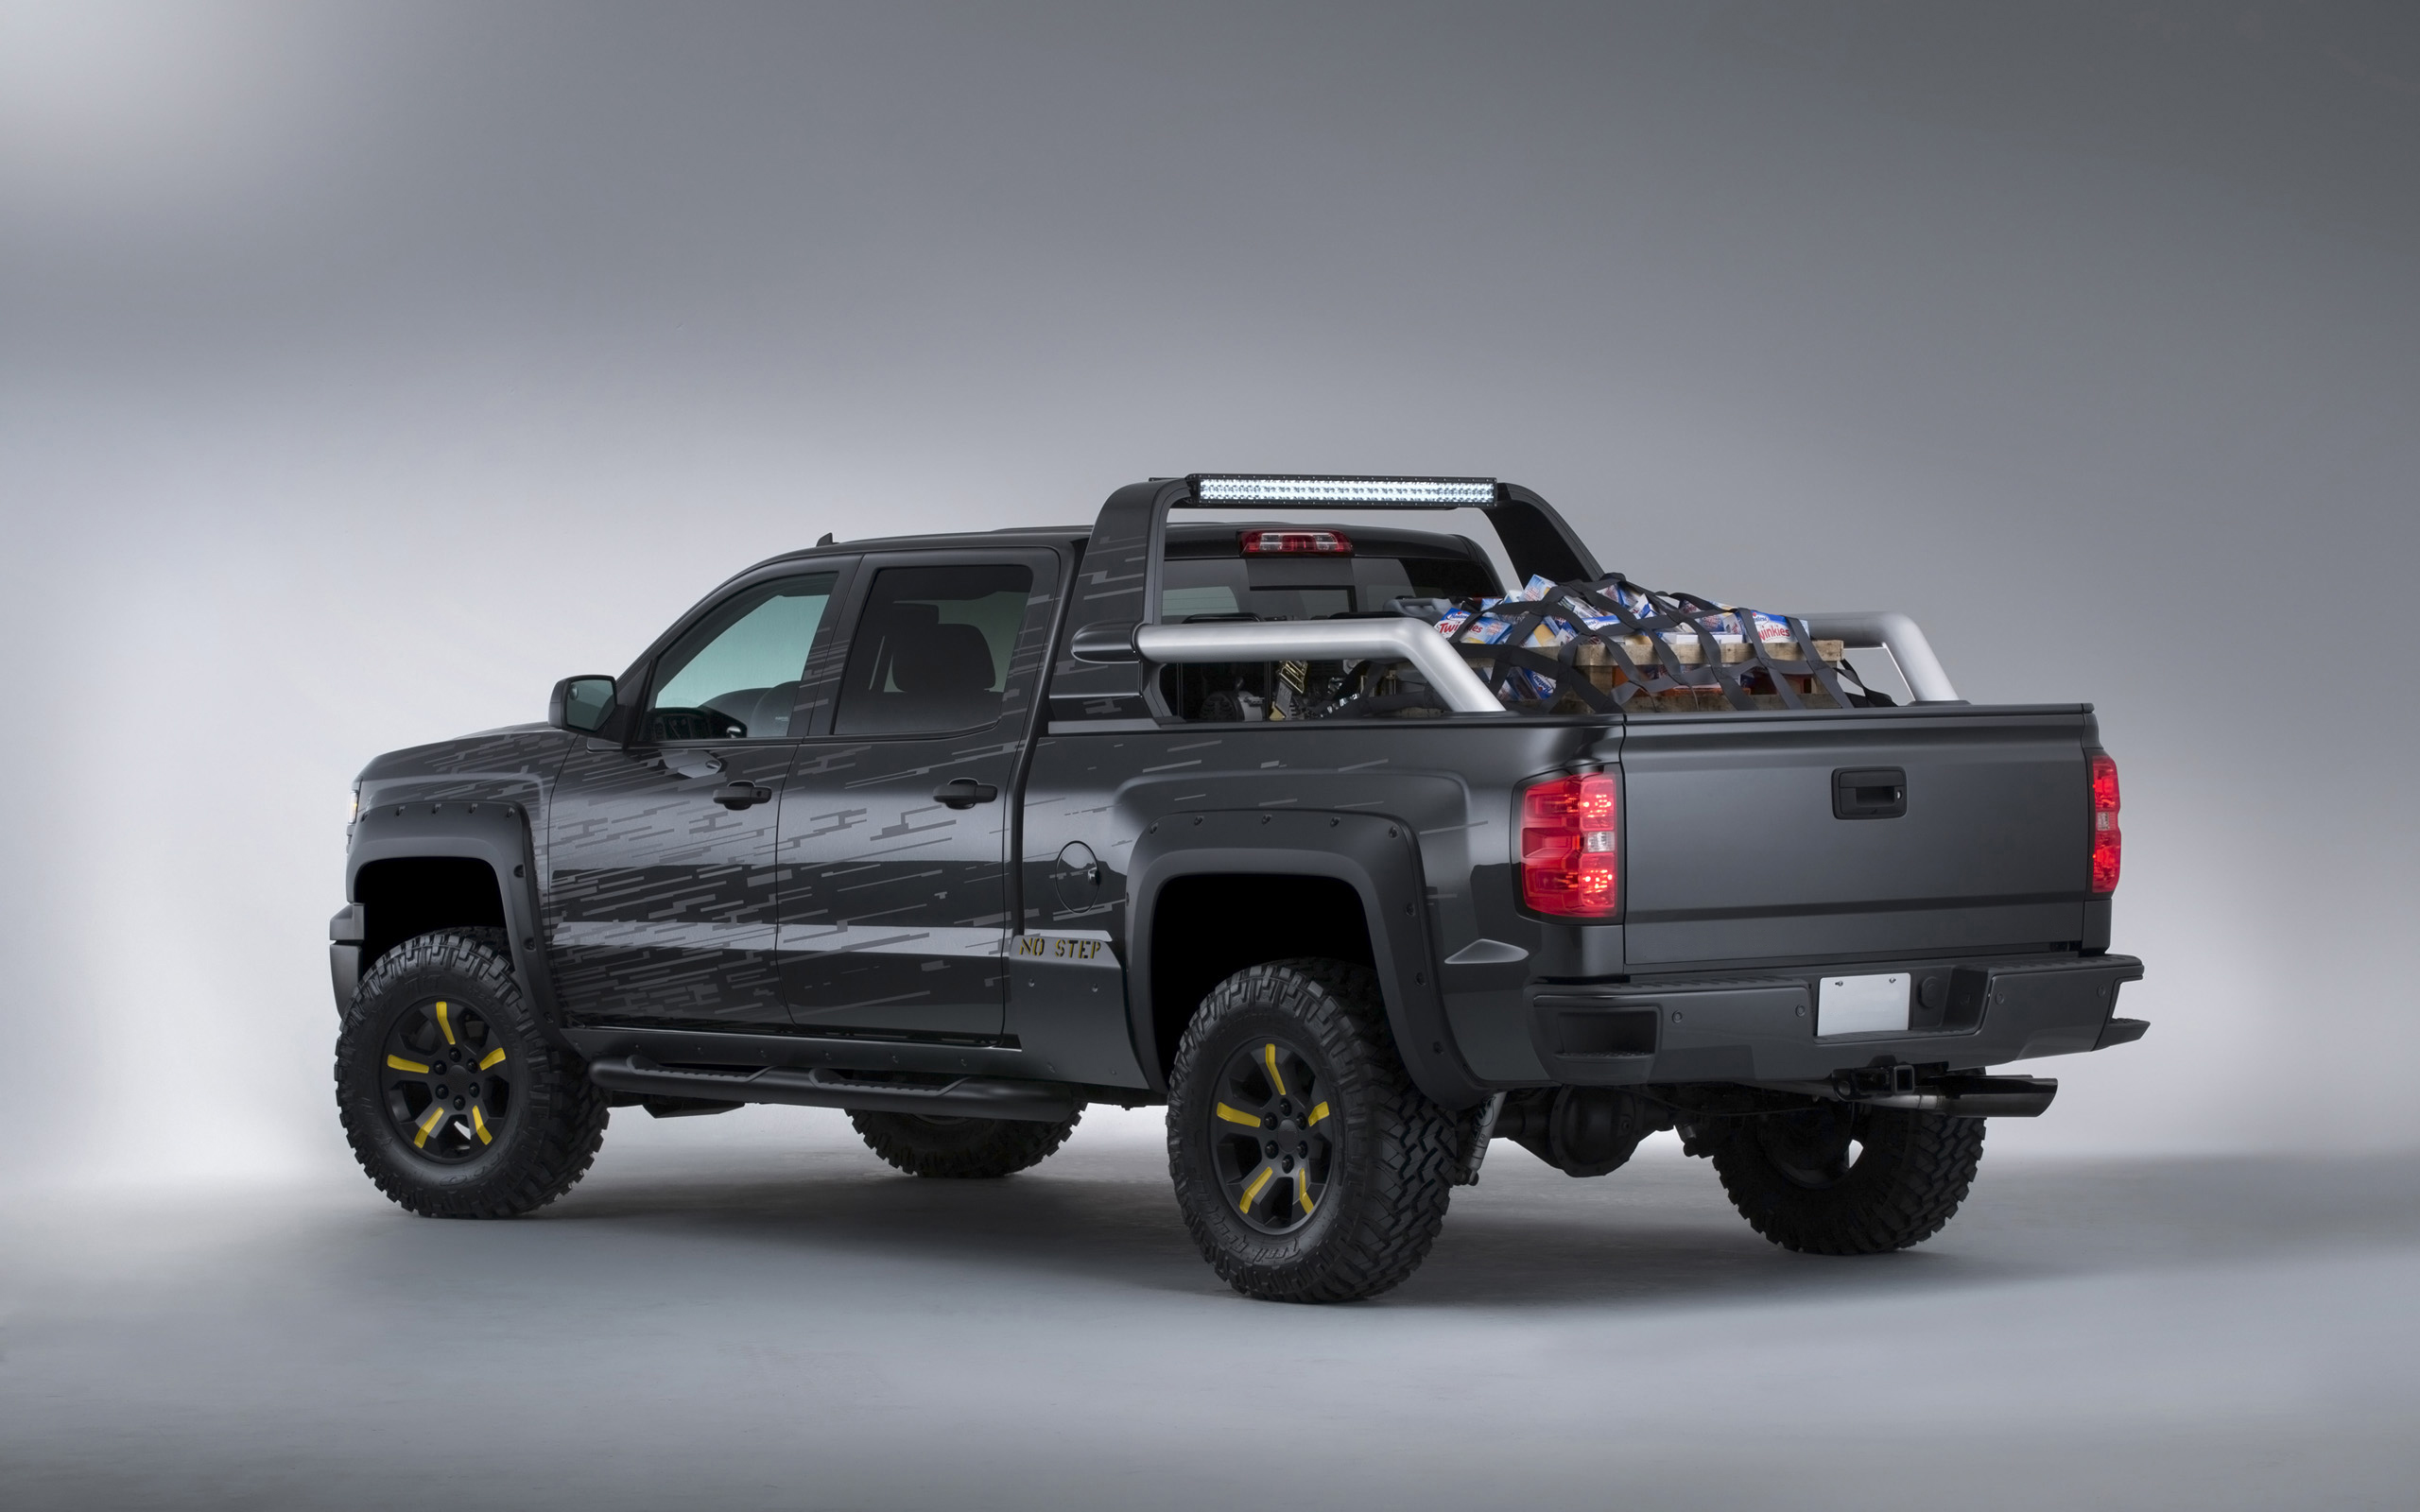 chevrolet silverado reviews speed cars news for top sale reaper and